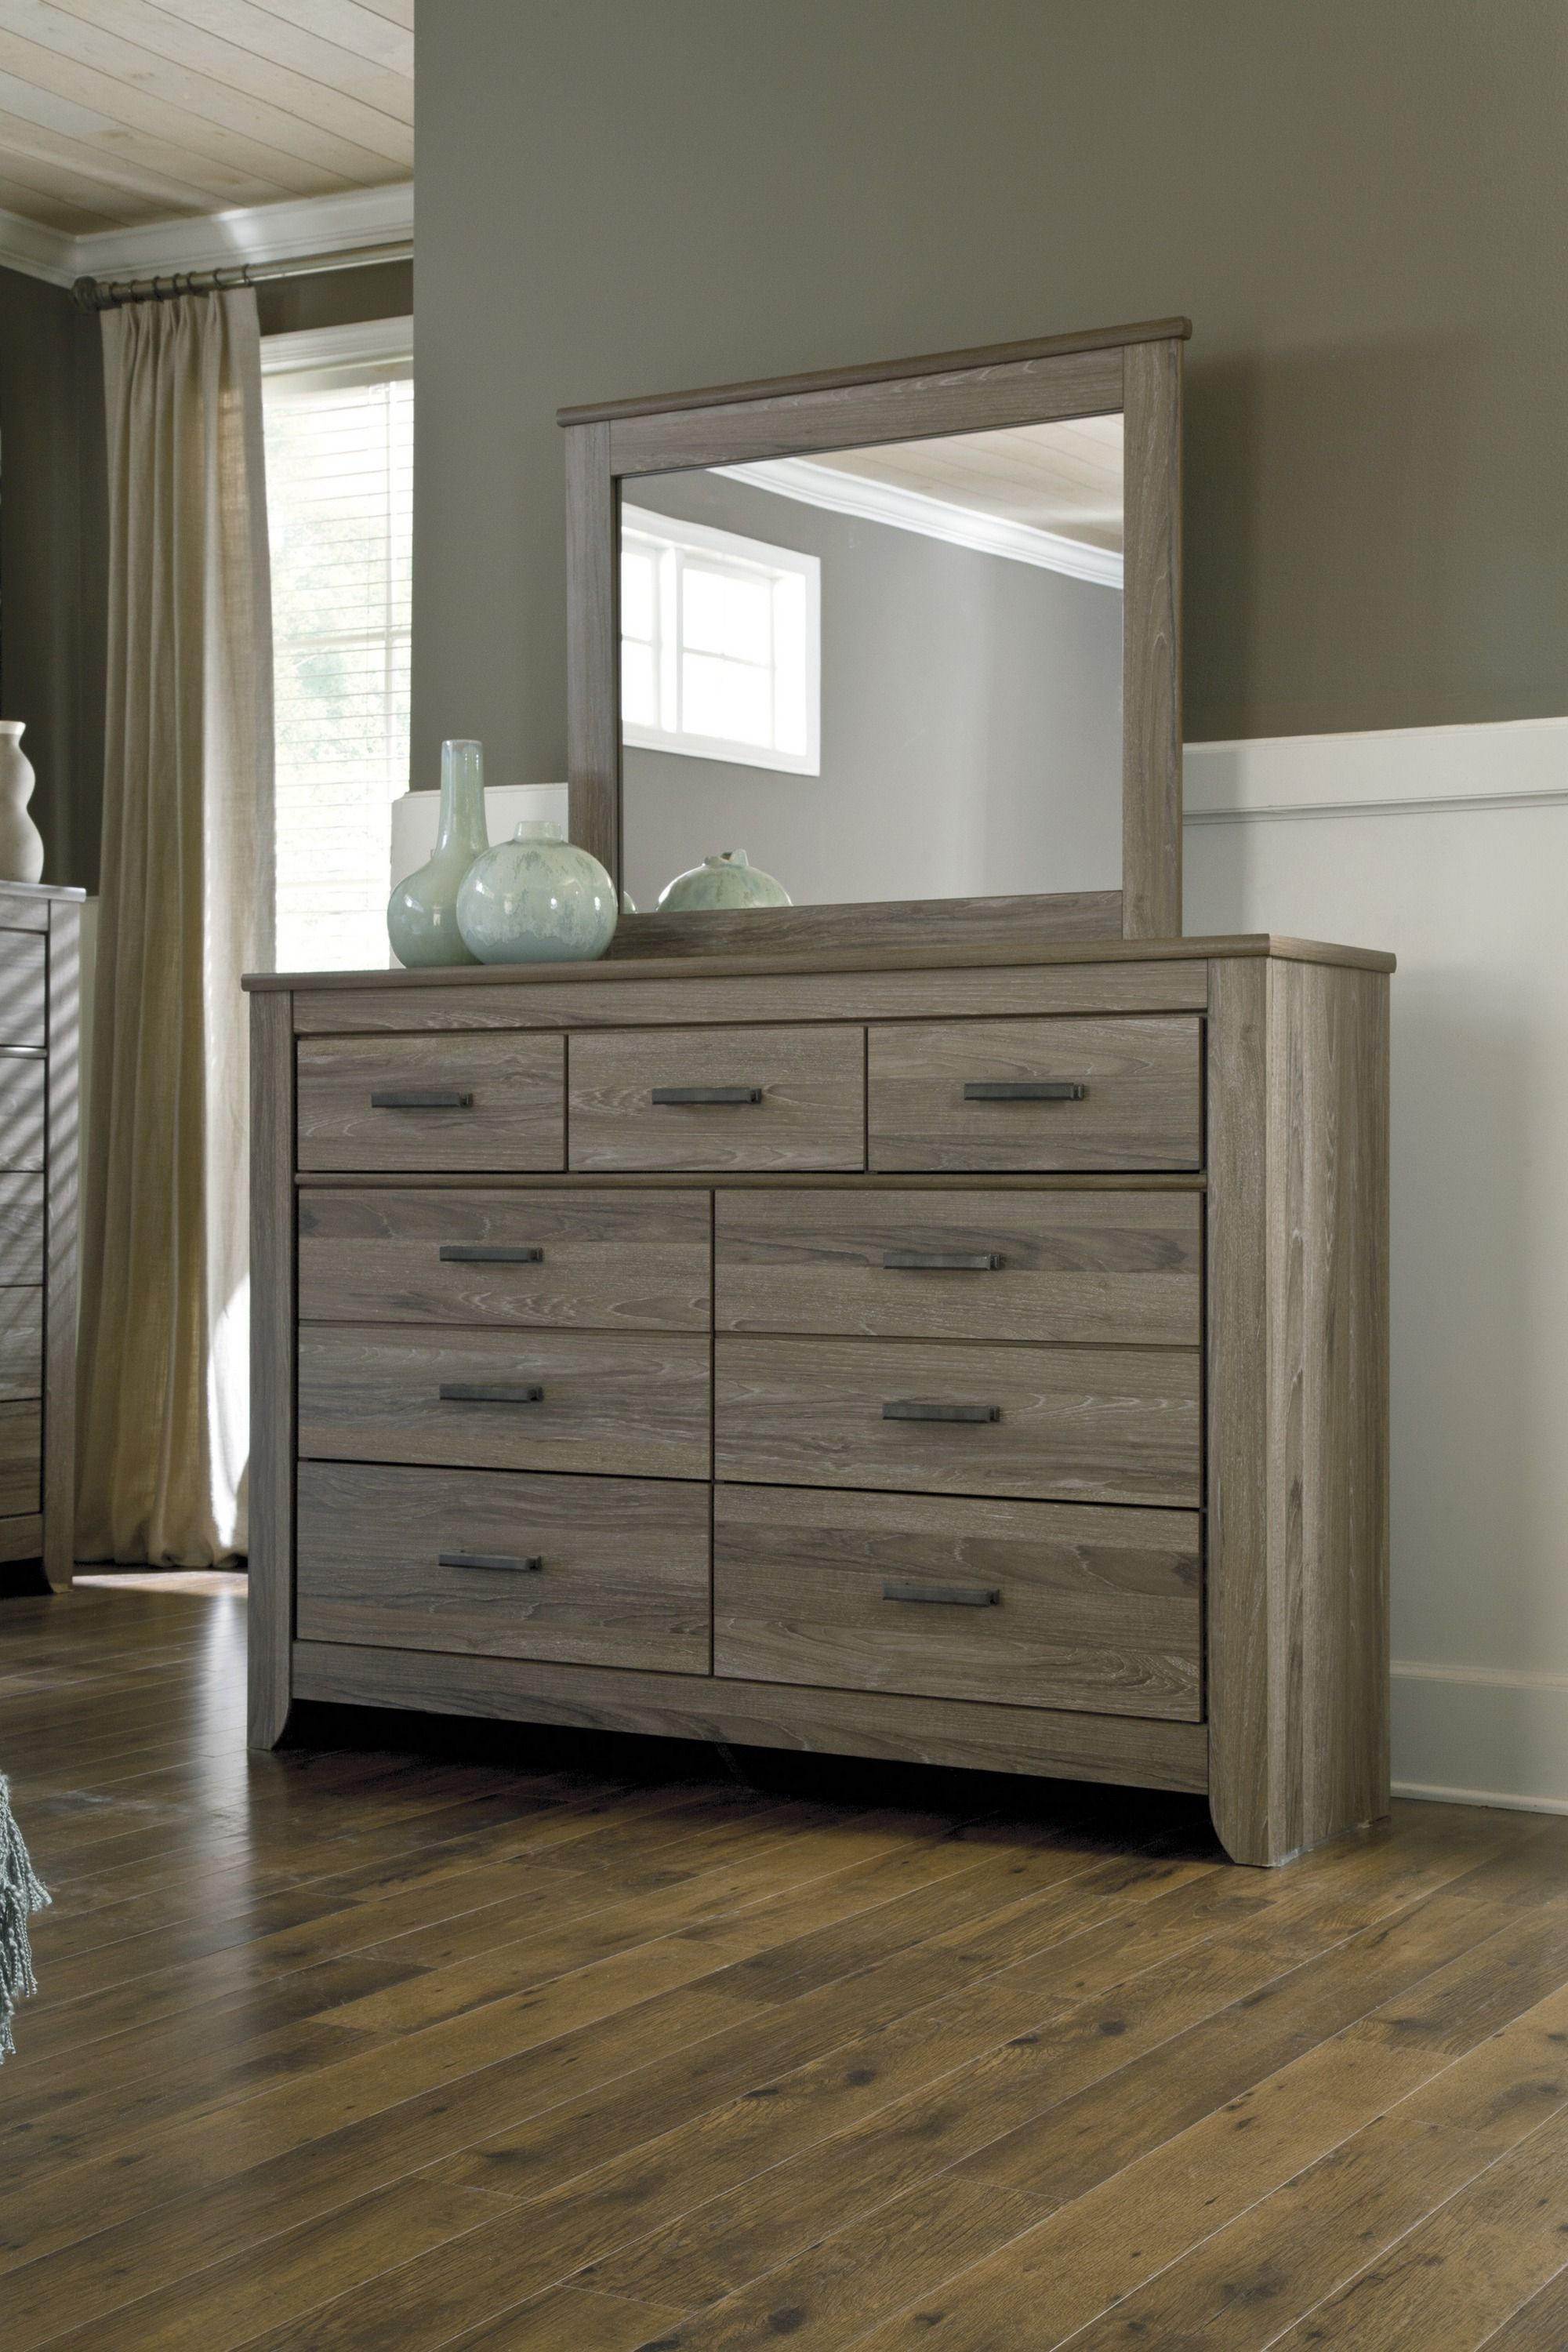 B Signature By Ashley Zelen Dresser Warm Gray Big Sandy - Big sandy bedroom furniture